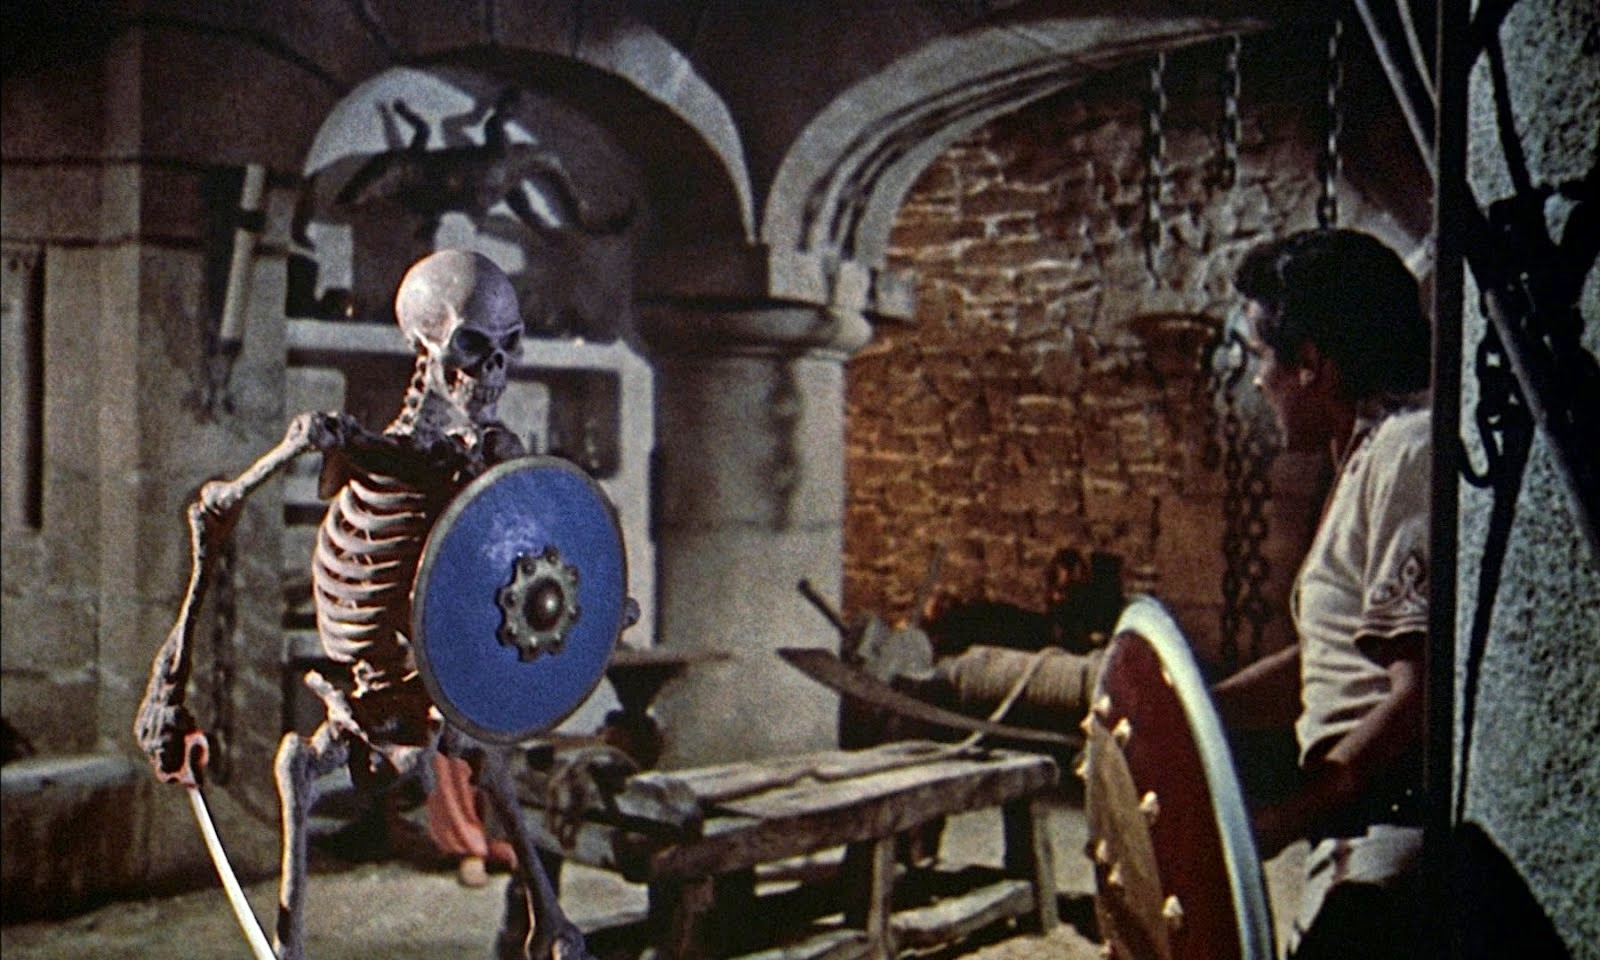 Sinbad (Kerwin Mathews) fights off the reanimated skeleton in The 7th Voyage of Sinbad (1958)